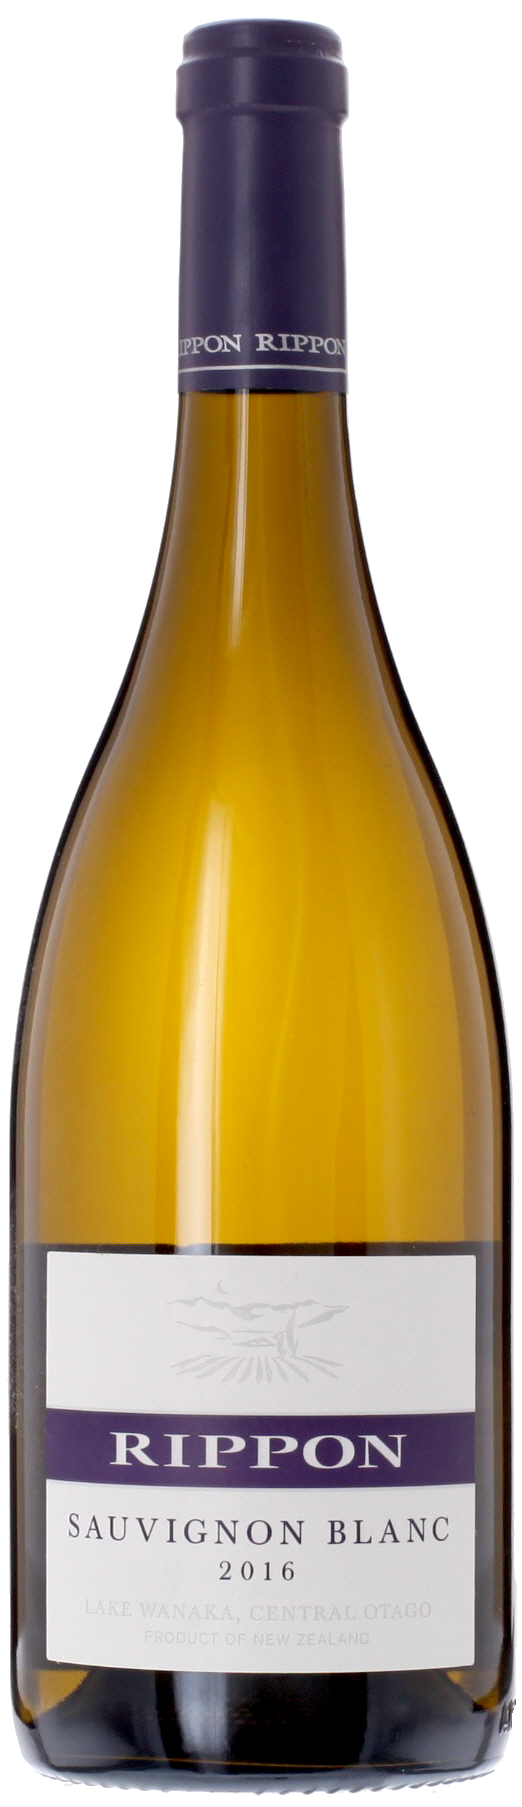 Rippon Sauvignon Blanc Central Otago, New Zealand 2016, 14%